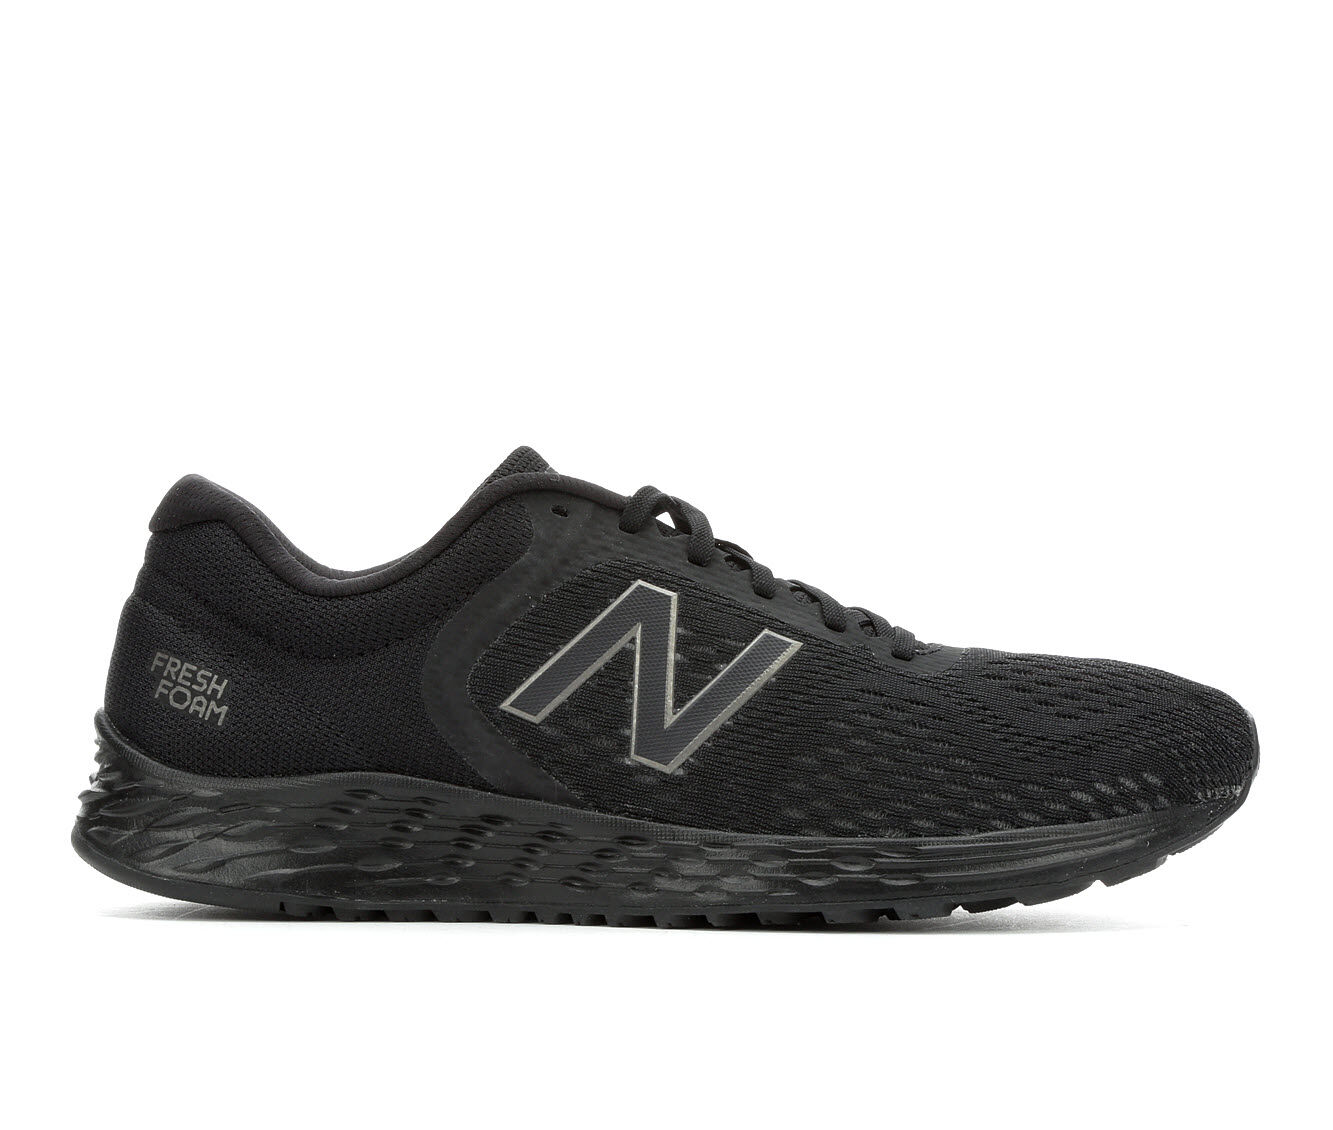 Men's New Balance Arishi v2 Running Shoes Blk/Blk